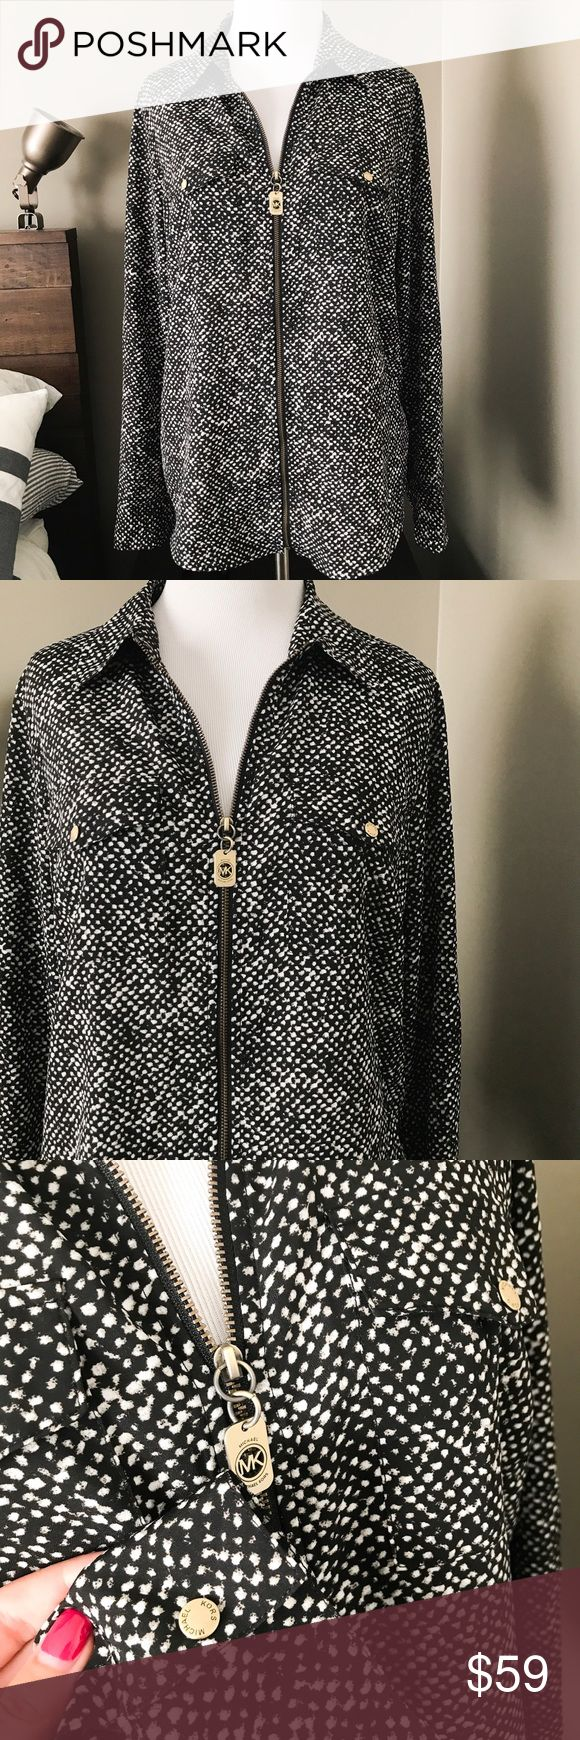 Michael Kors Zip Safari Shirt Gorgeous Flowy zip-up safari style Blouse from MK. Gold zip and button accents. Size M. Perfect condition. MICHAEL Michael Kors Tops Blouses